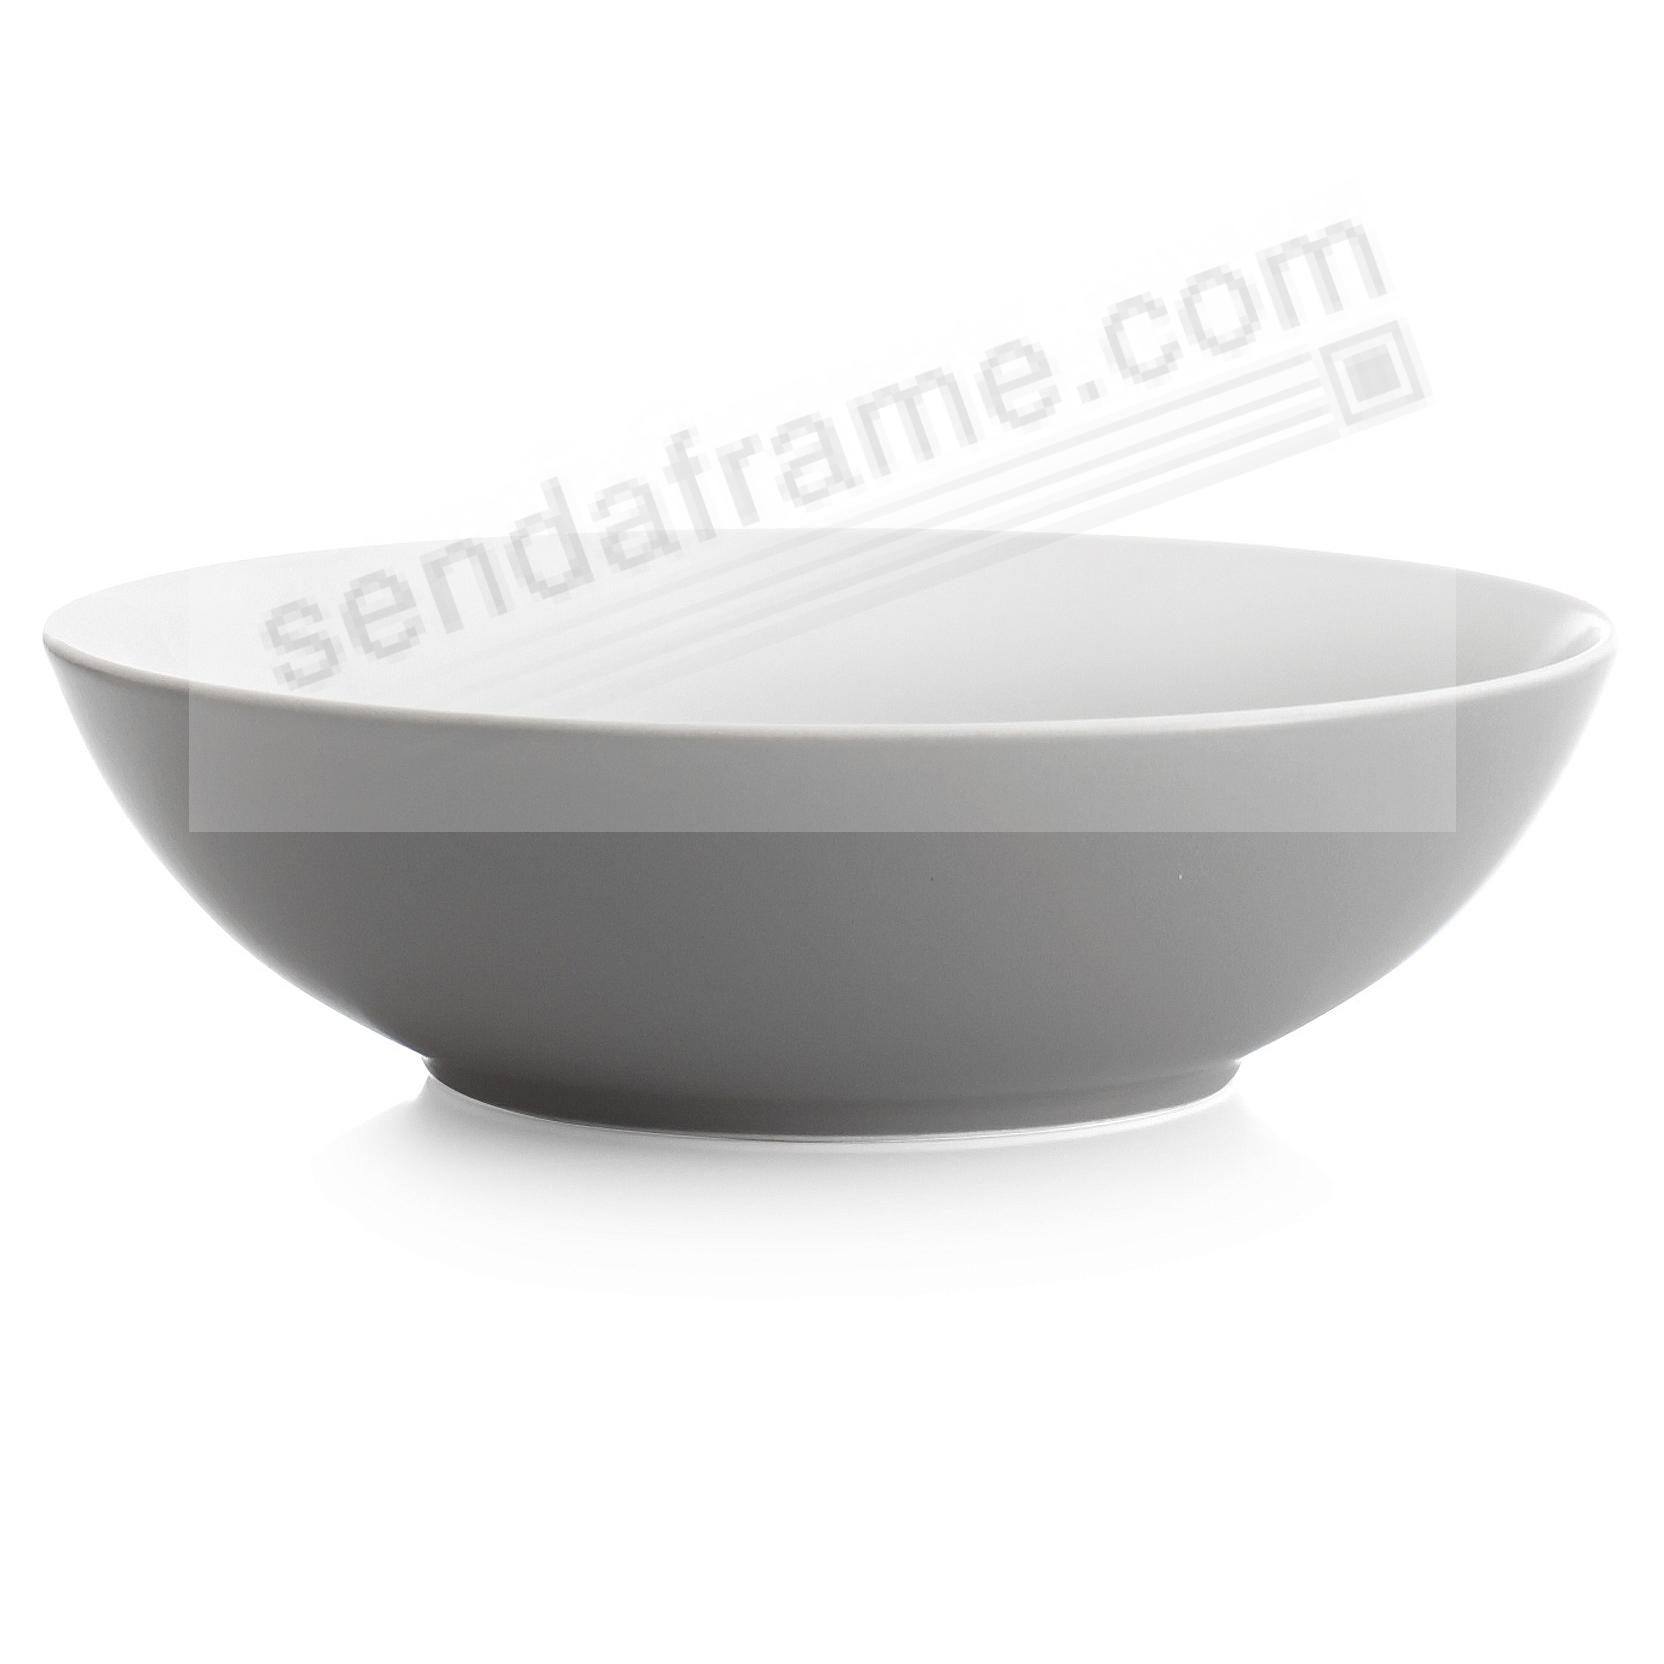 POP SLATE-GREY SOUP/CEREAL BOWL by Nambe®